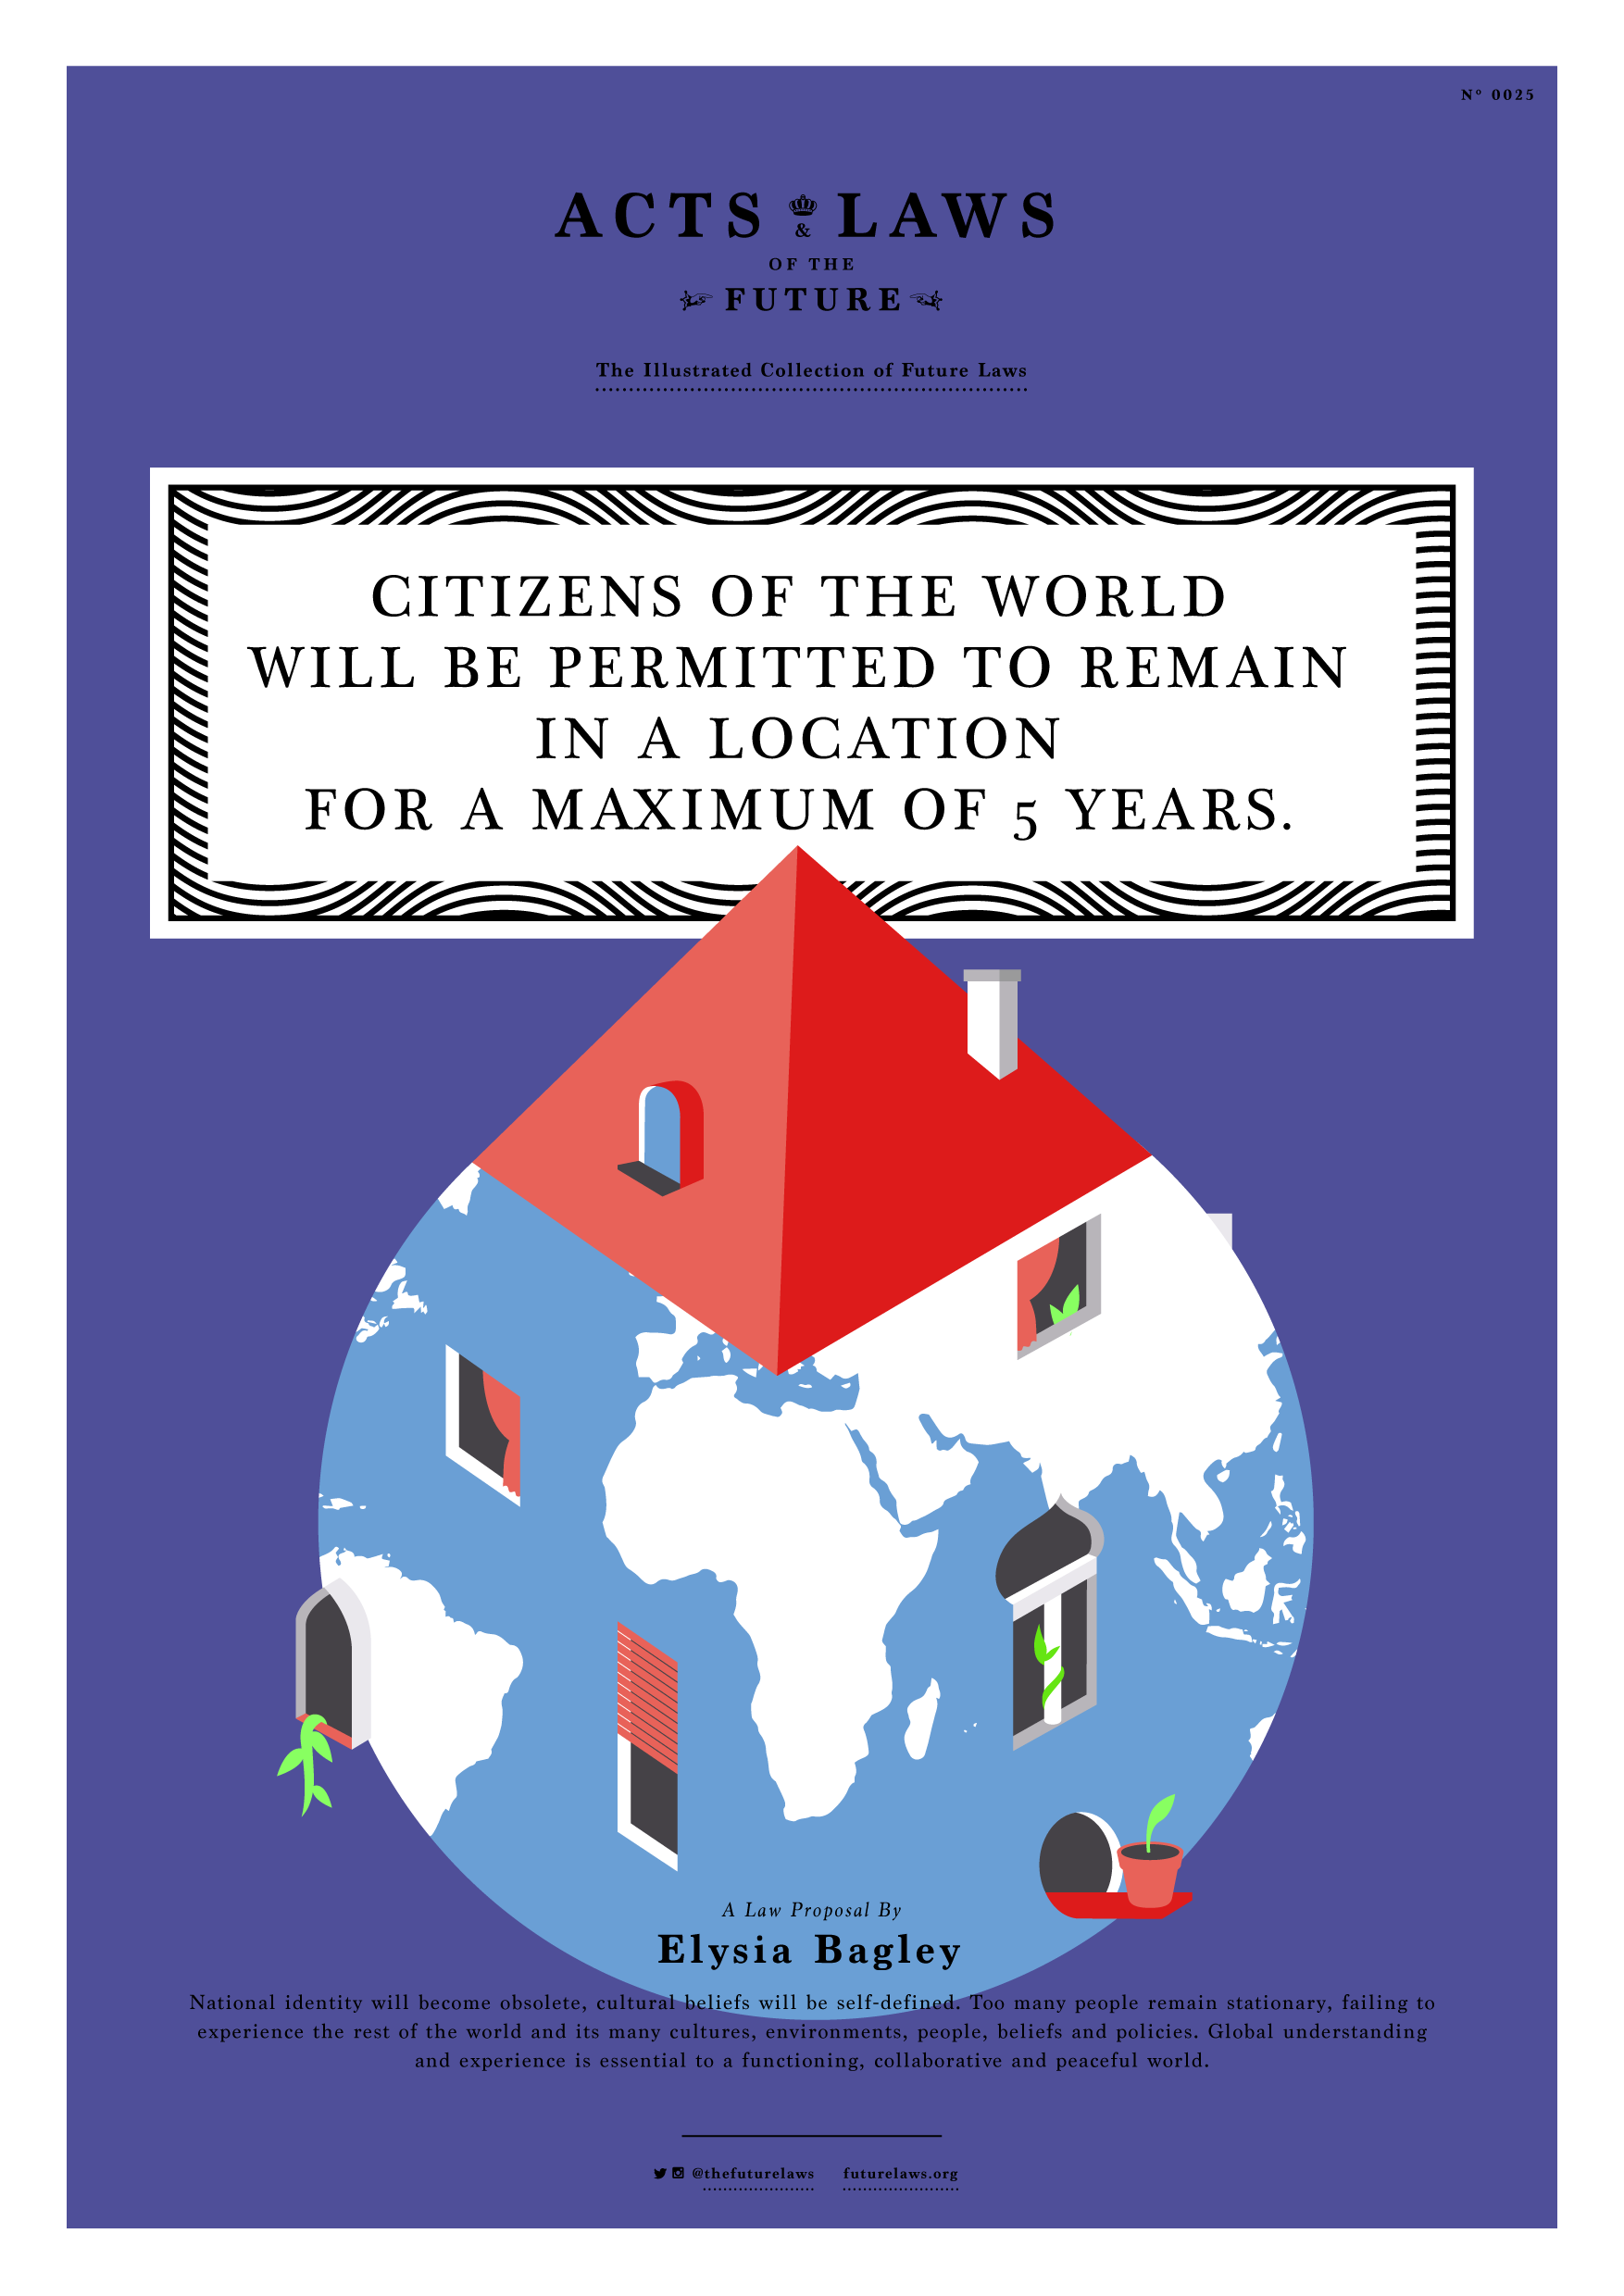 Citizens of the world will be permitted to remain in a location for a maximum of 5 years.